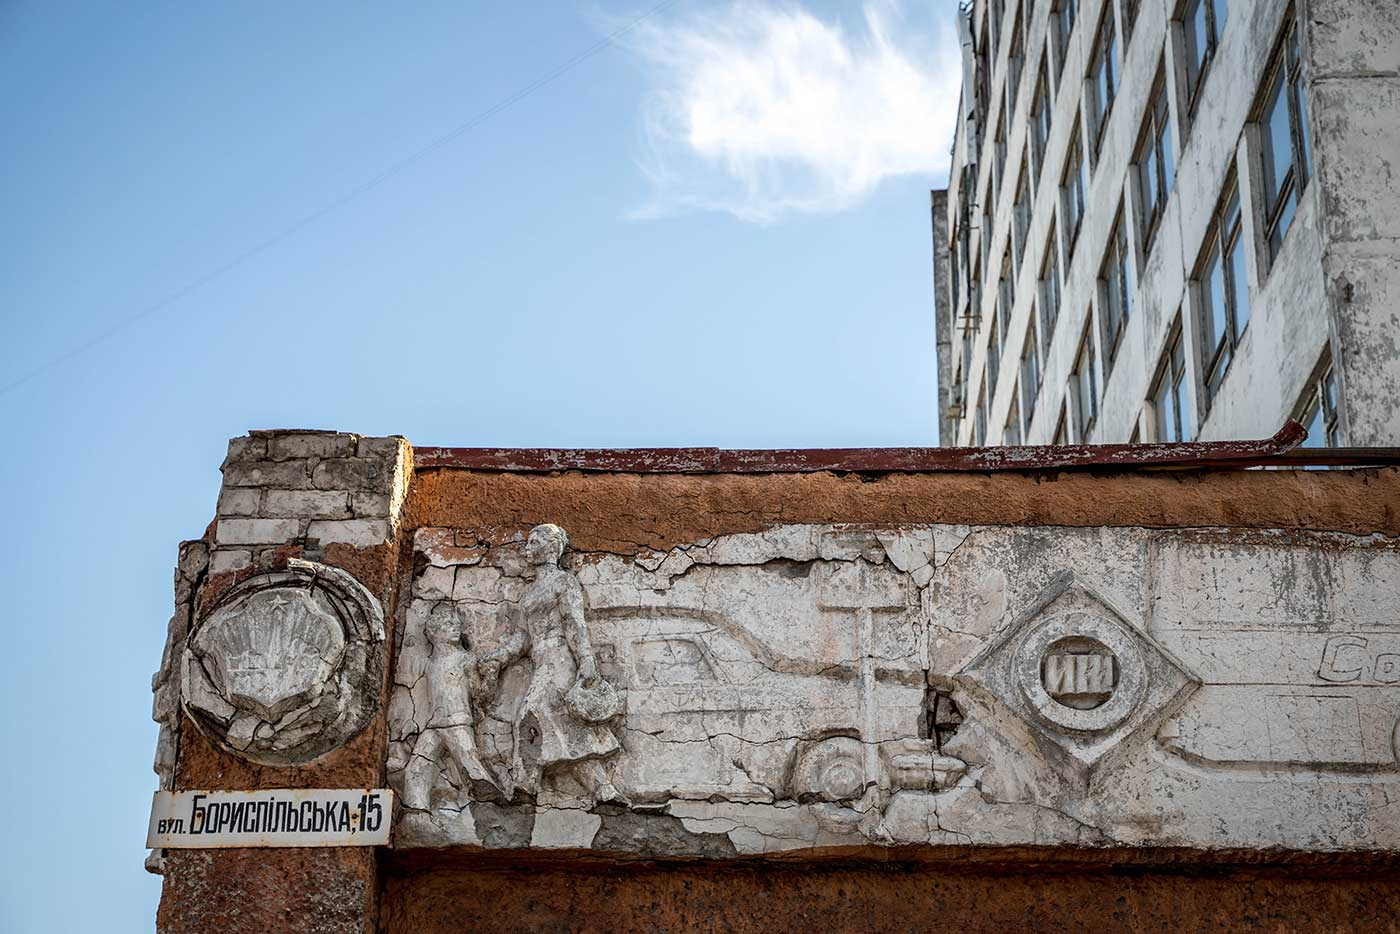 A sculpted relief decorates the front of the AП №7 building on Boryspilska Street. Autobus Park №7: the abandoned bus depot in Kyiv, Ukraine.